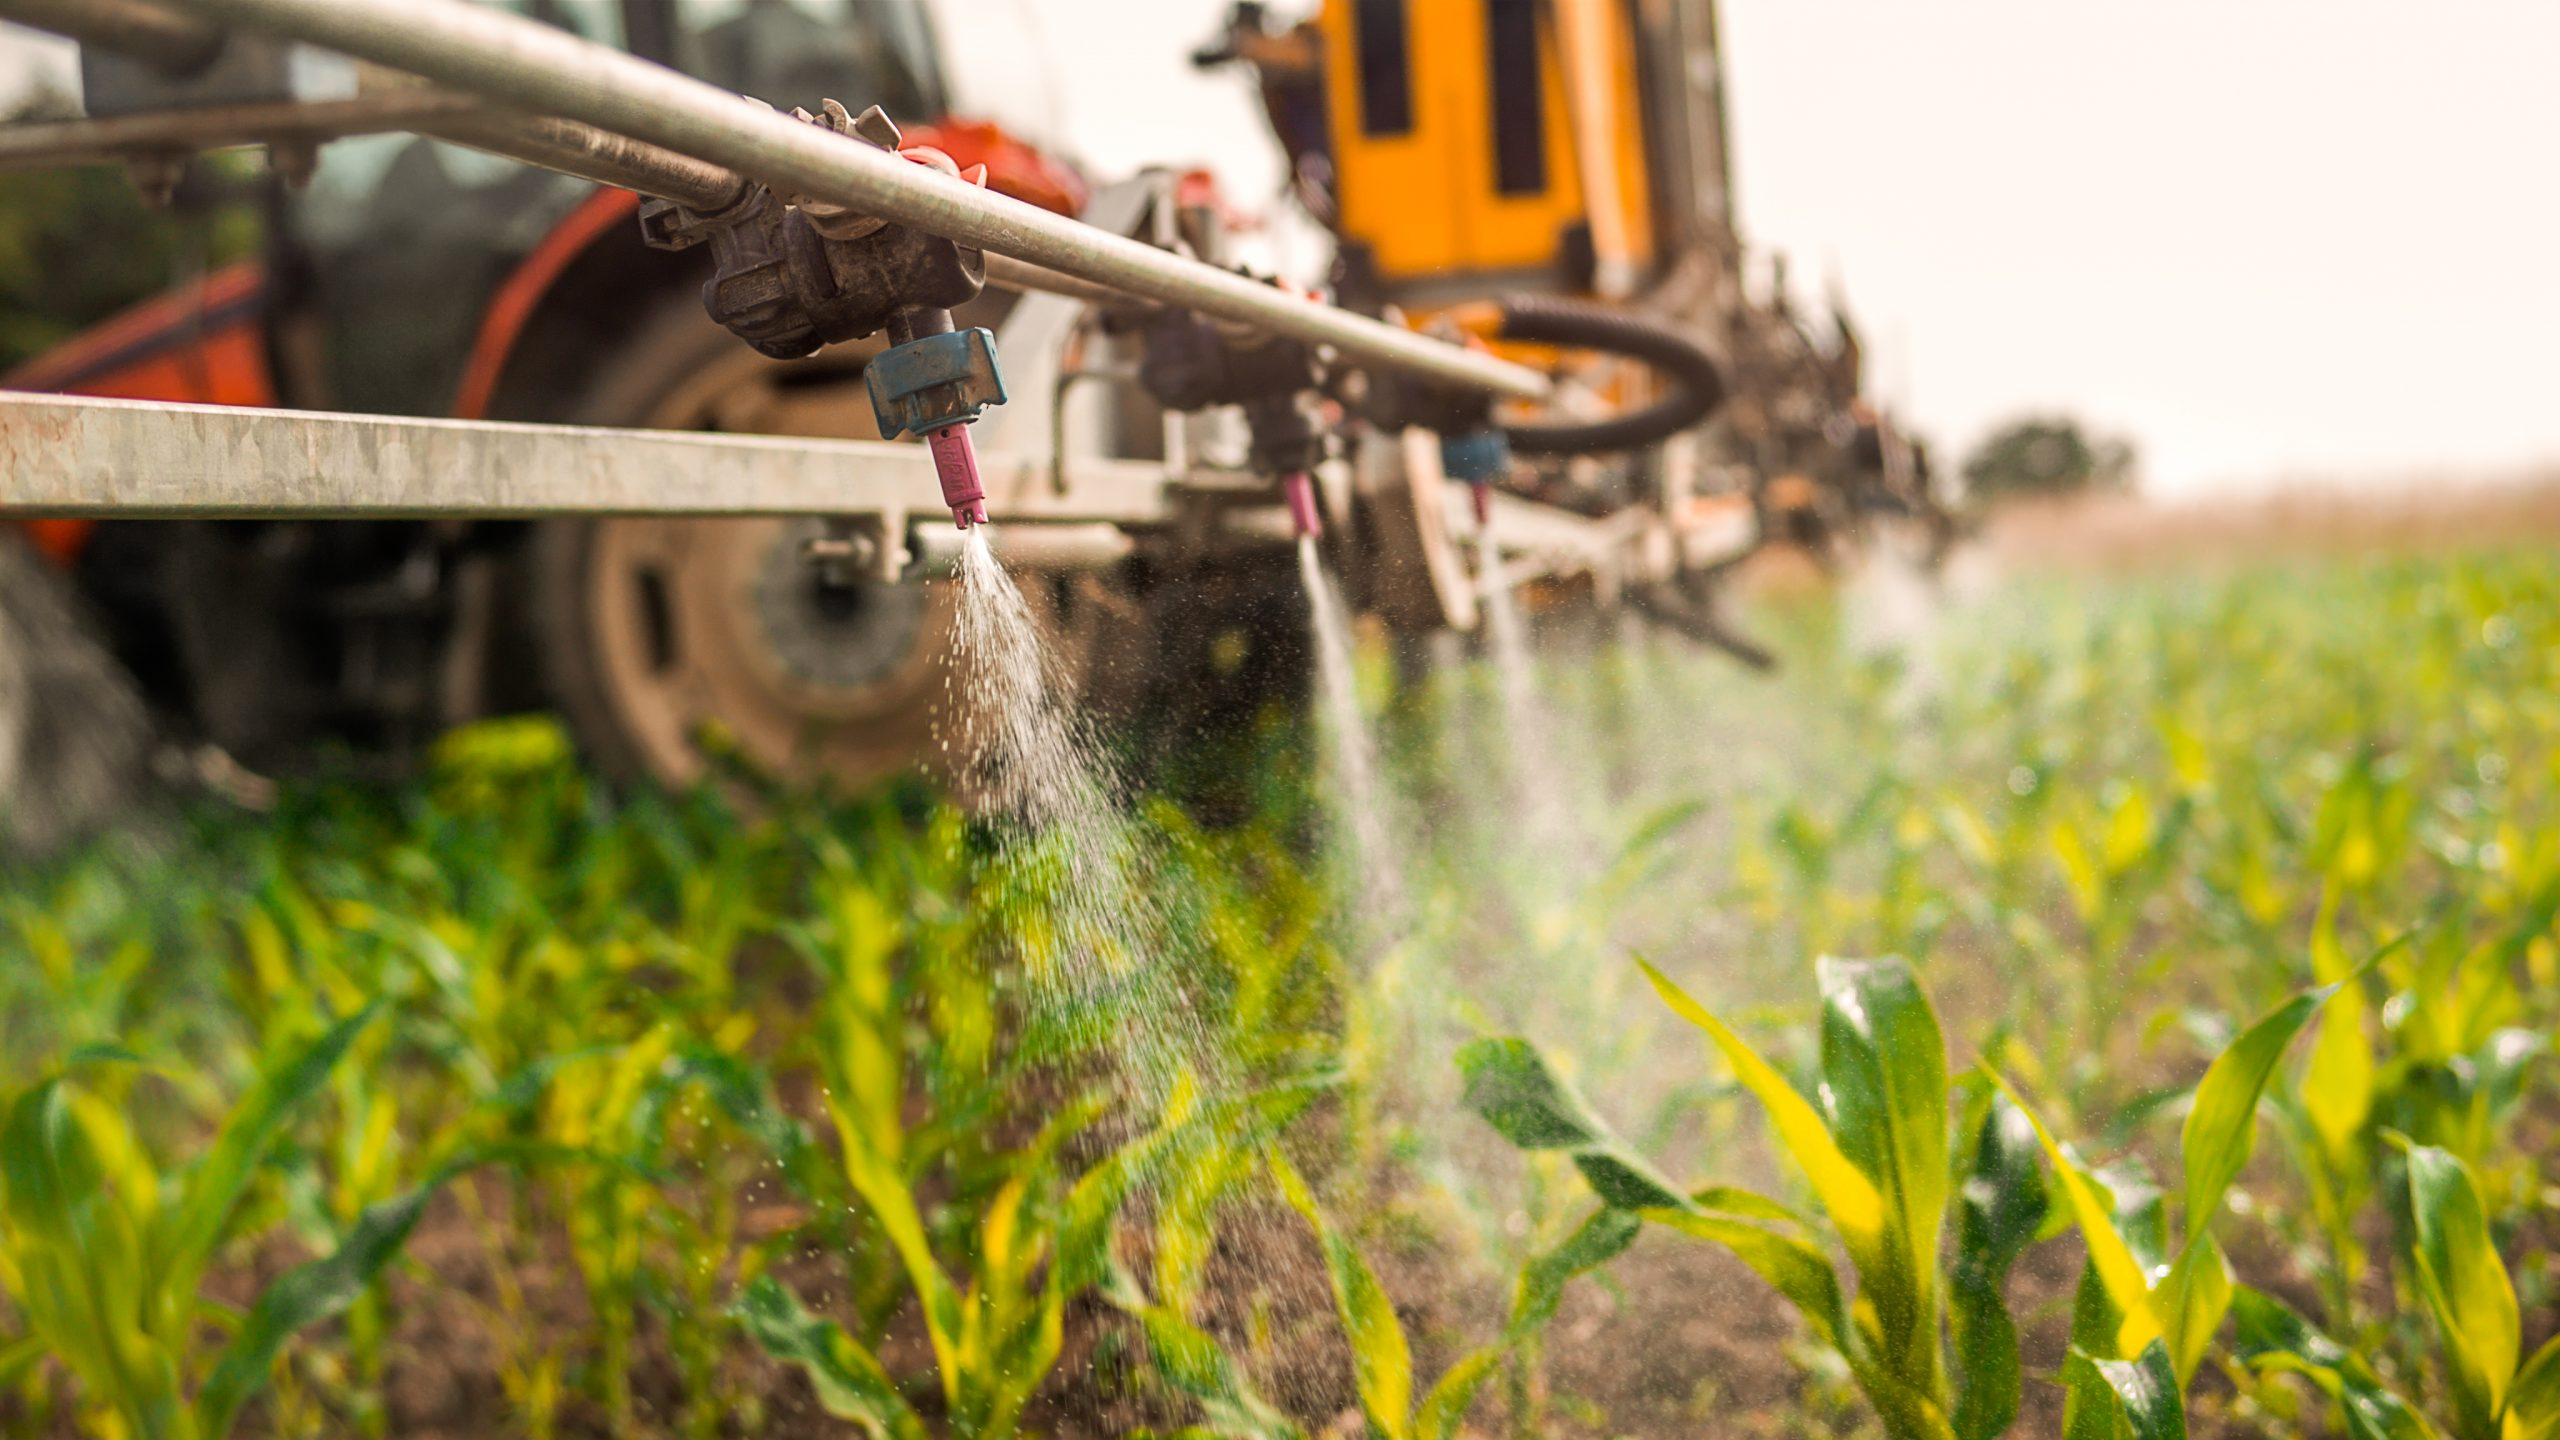 Commercial application of pesticides on crops